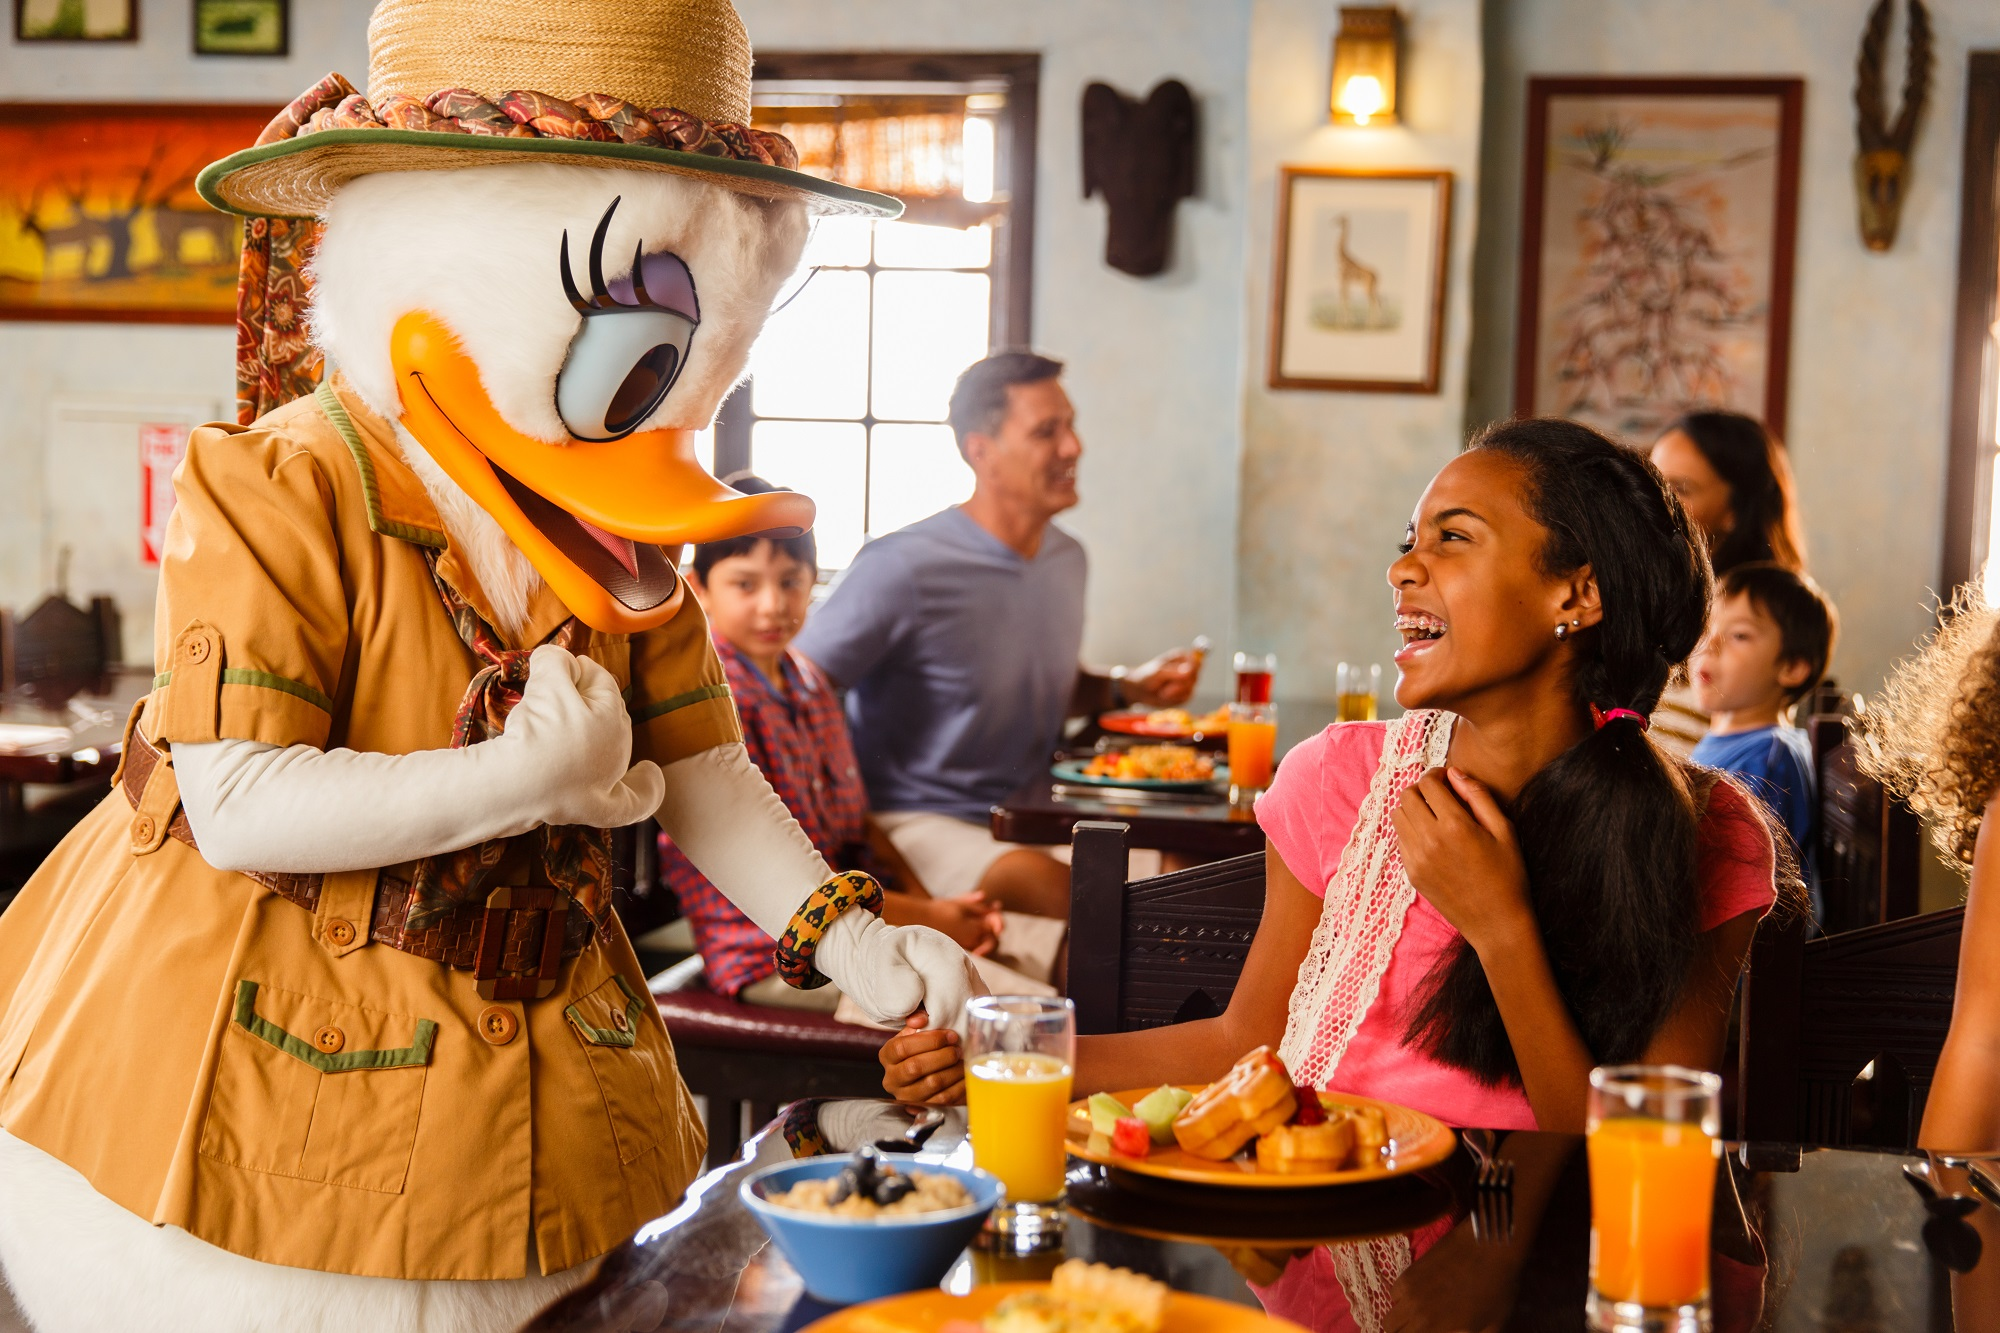 travel deals at Brads Deals, girl eating breakfast with daffy duck